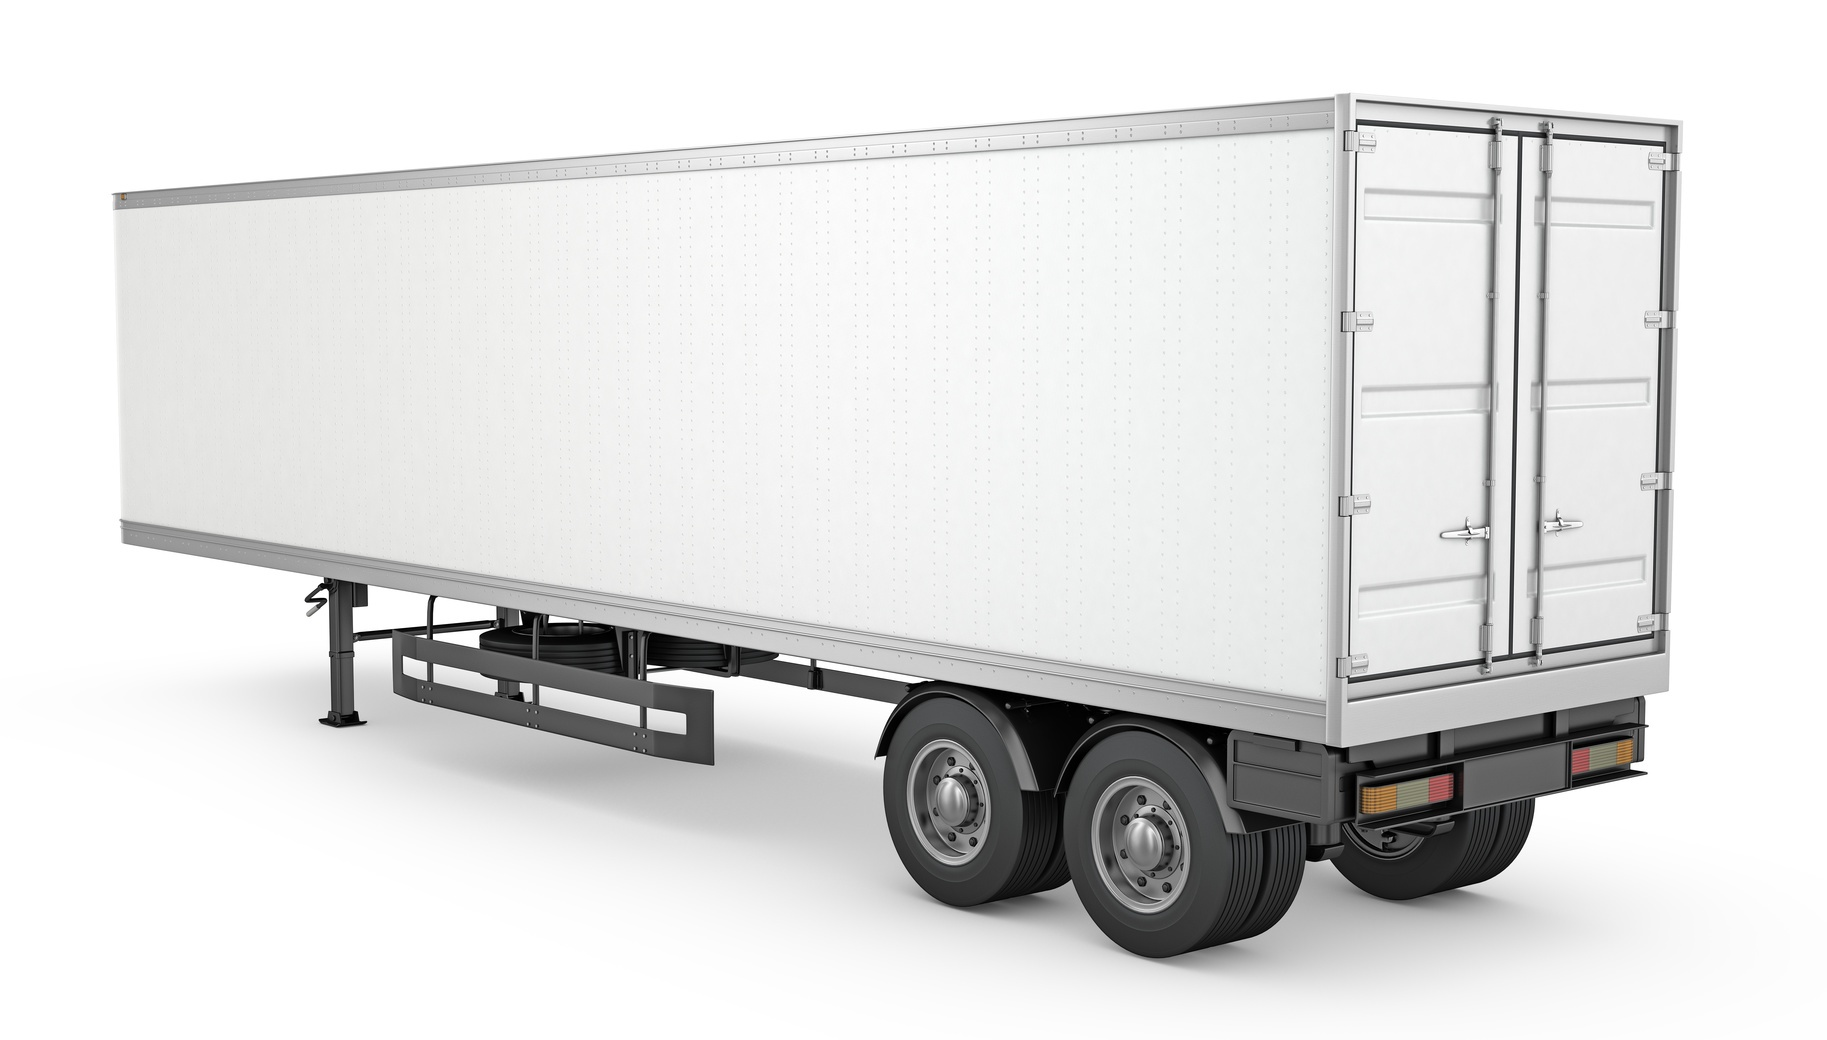 Thieves may try to avoid your truck's GPS tracker by stealing just the trailer... But trailer-mounted GPS can thwart this tactic.